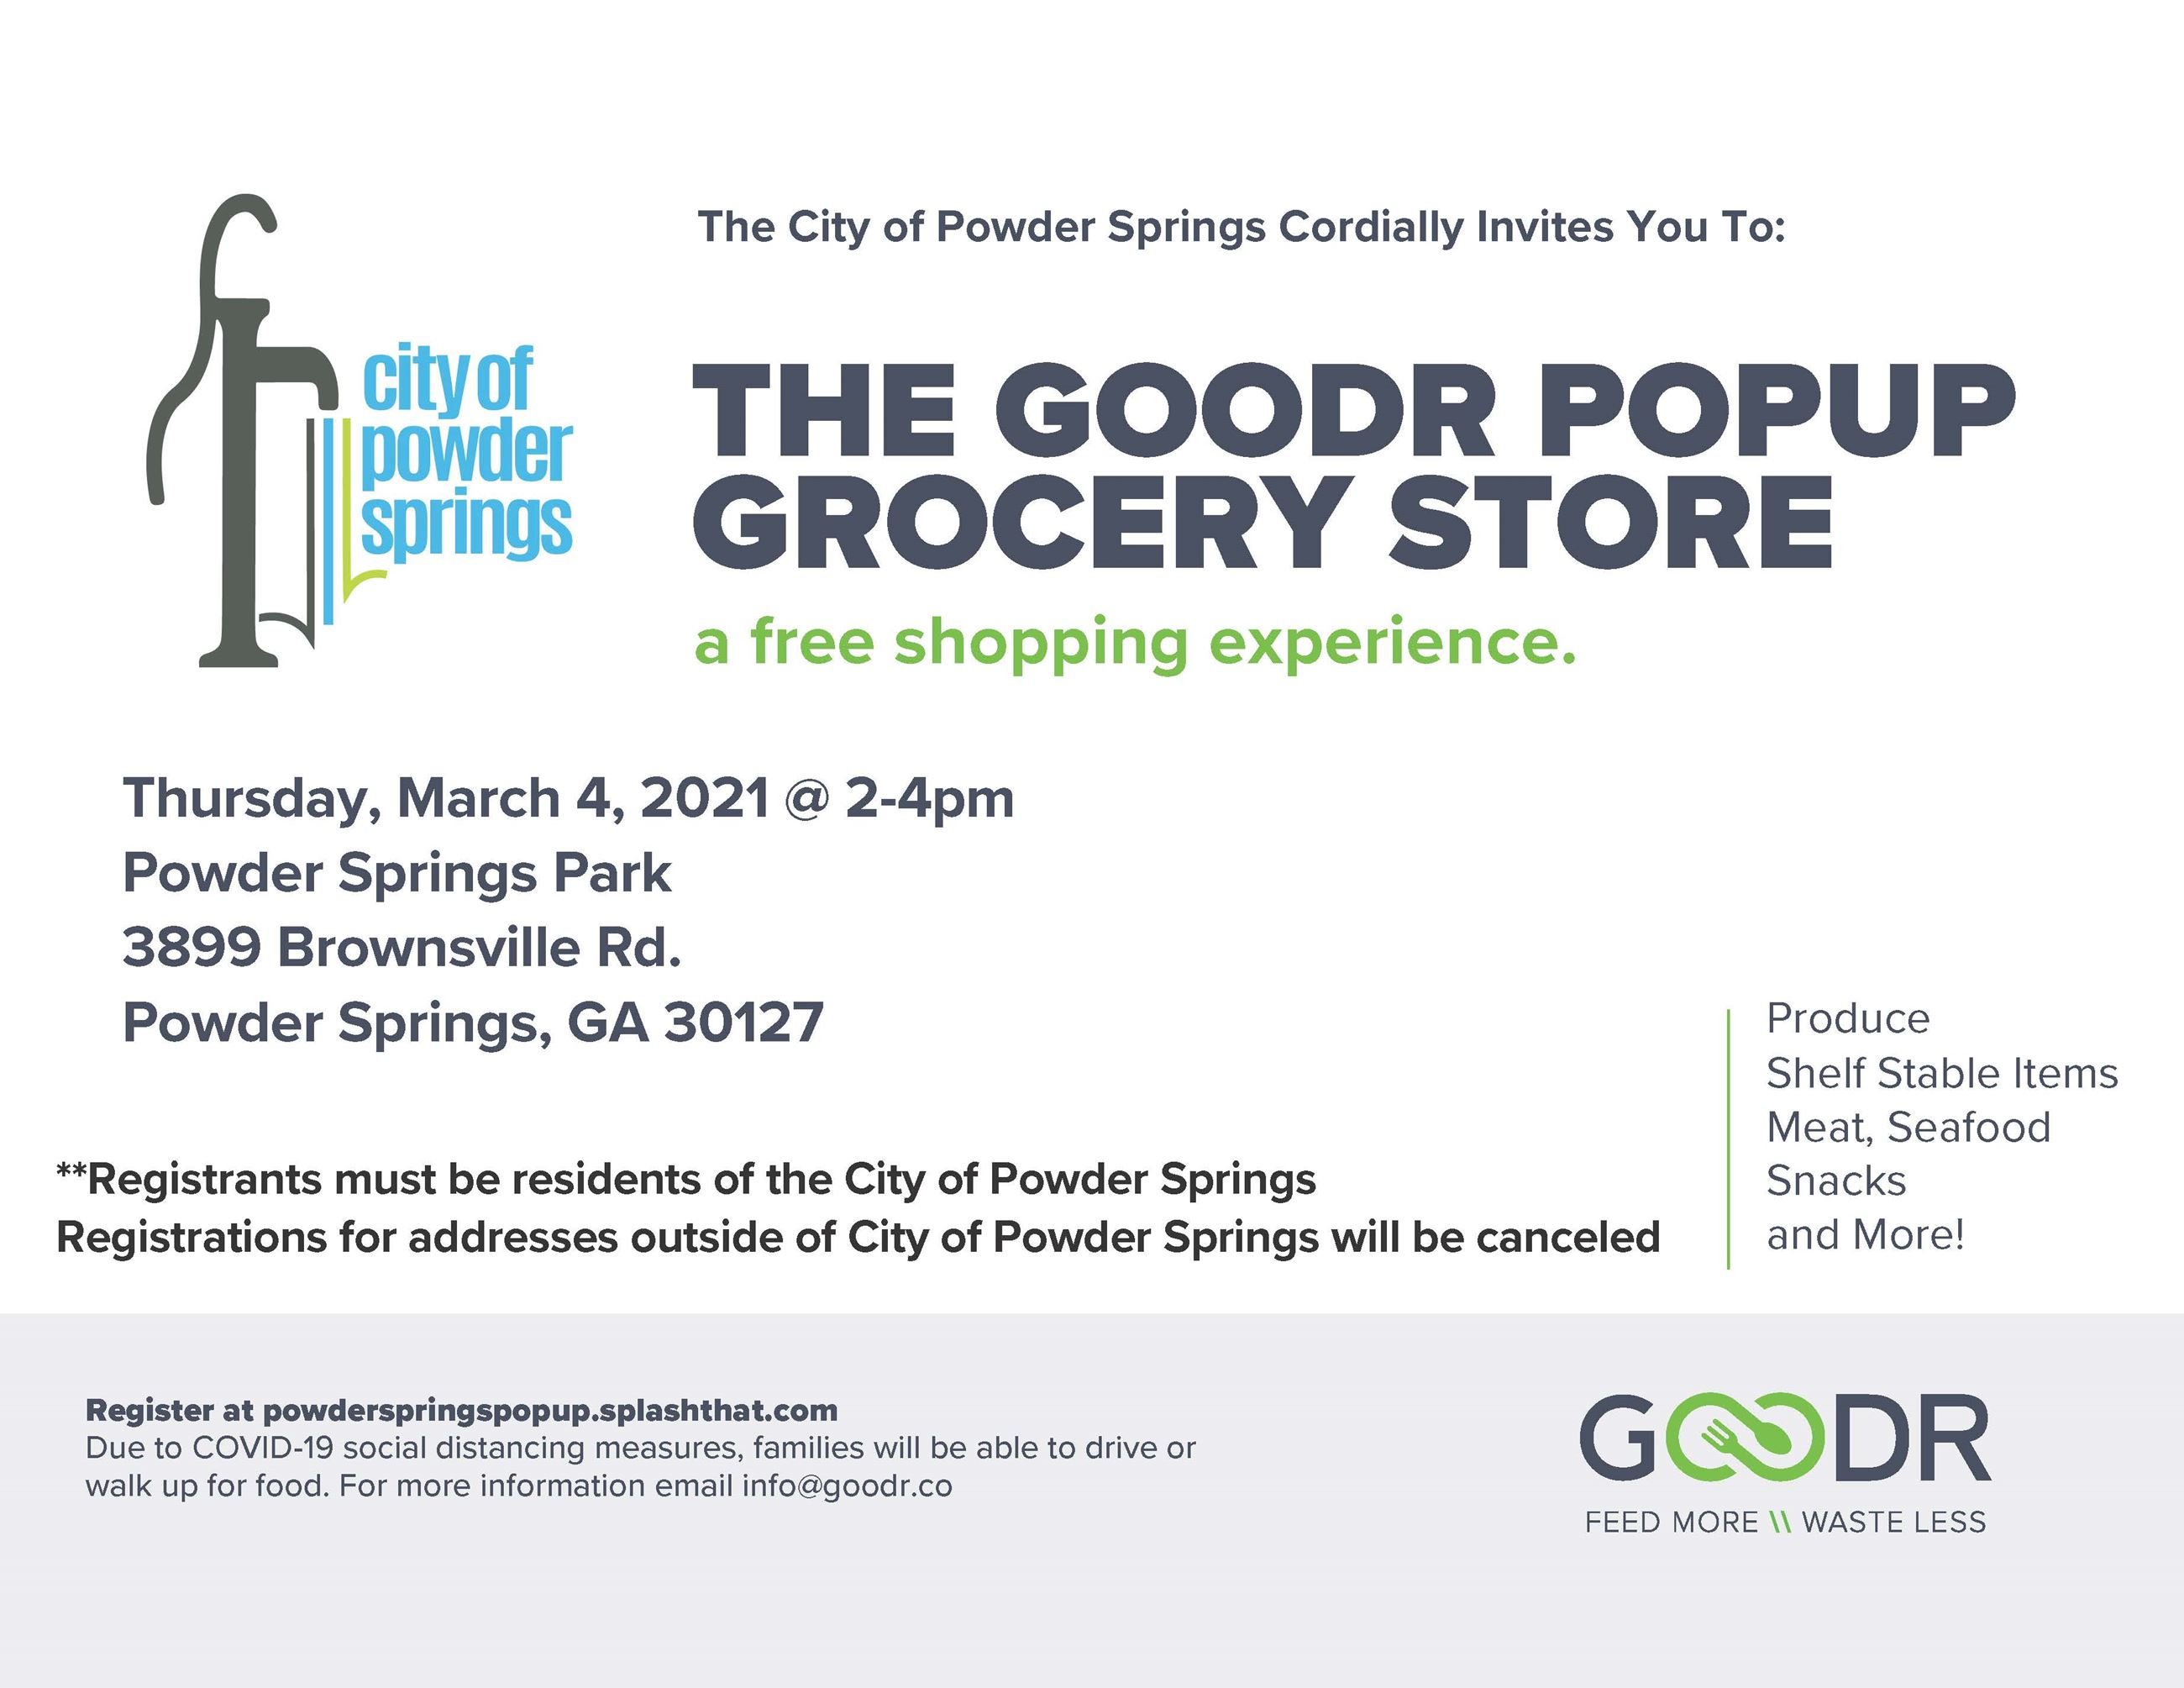 Flyer for Pop-up Grocery Store at Powder Springs Park on March 4, 2021